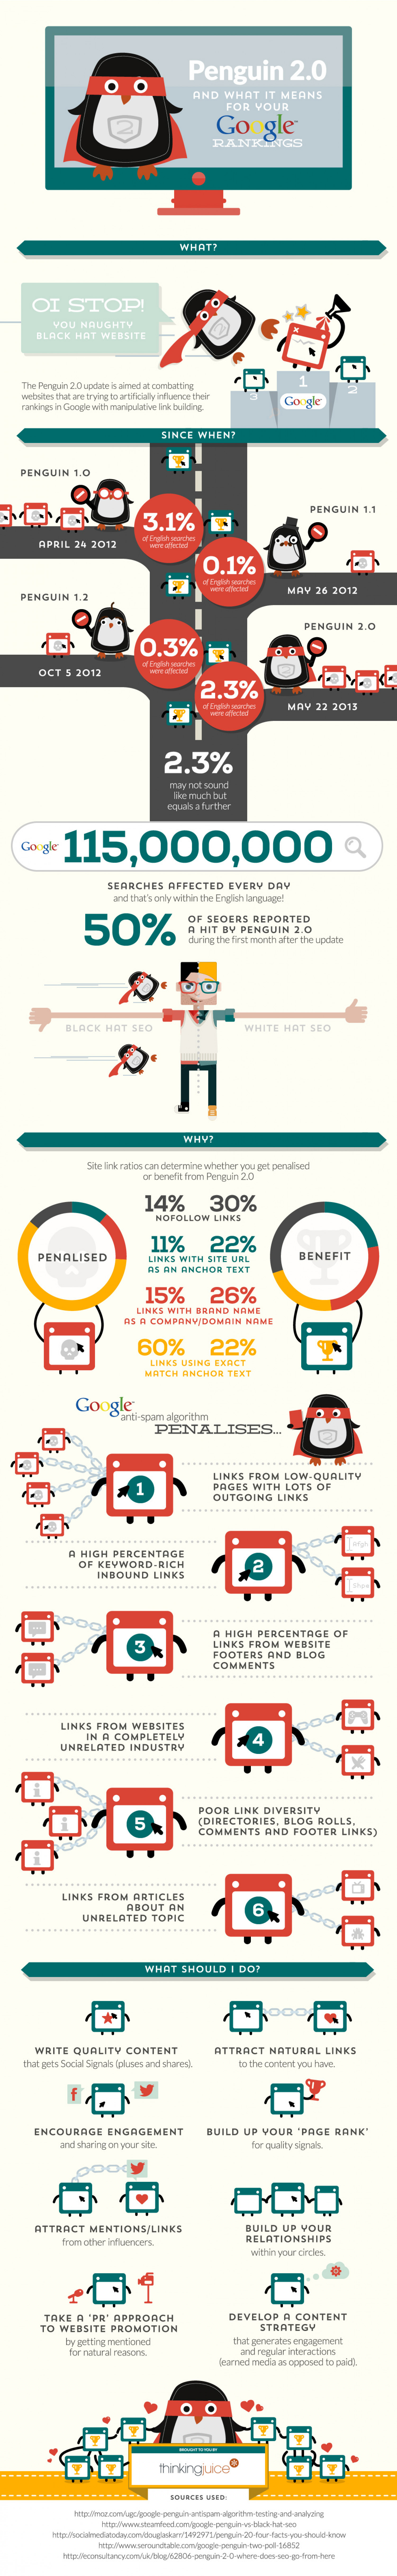 Google Penguin 2.0 Algorithm Update May 2013 - Infographic Infographic